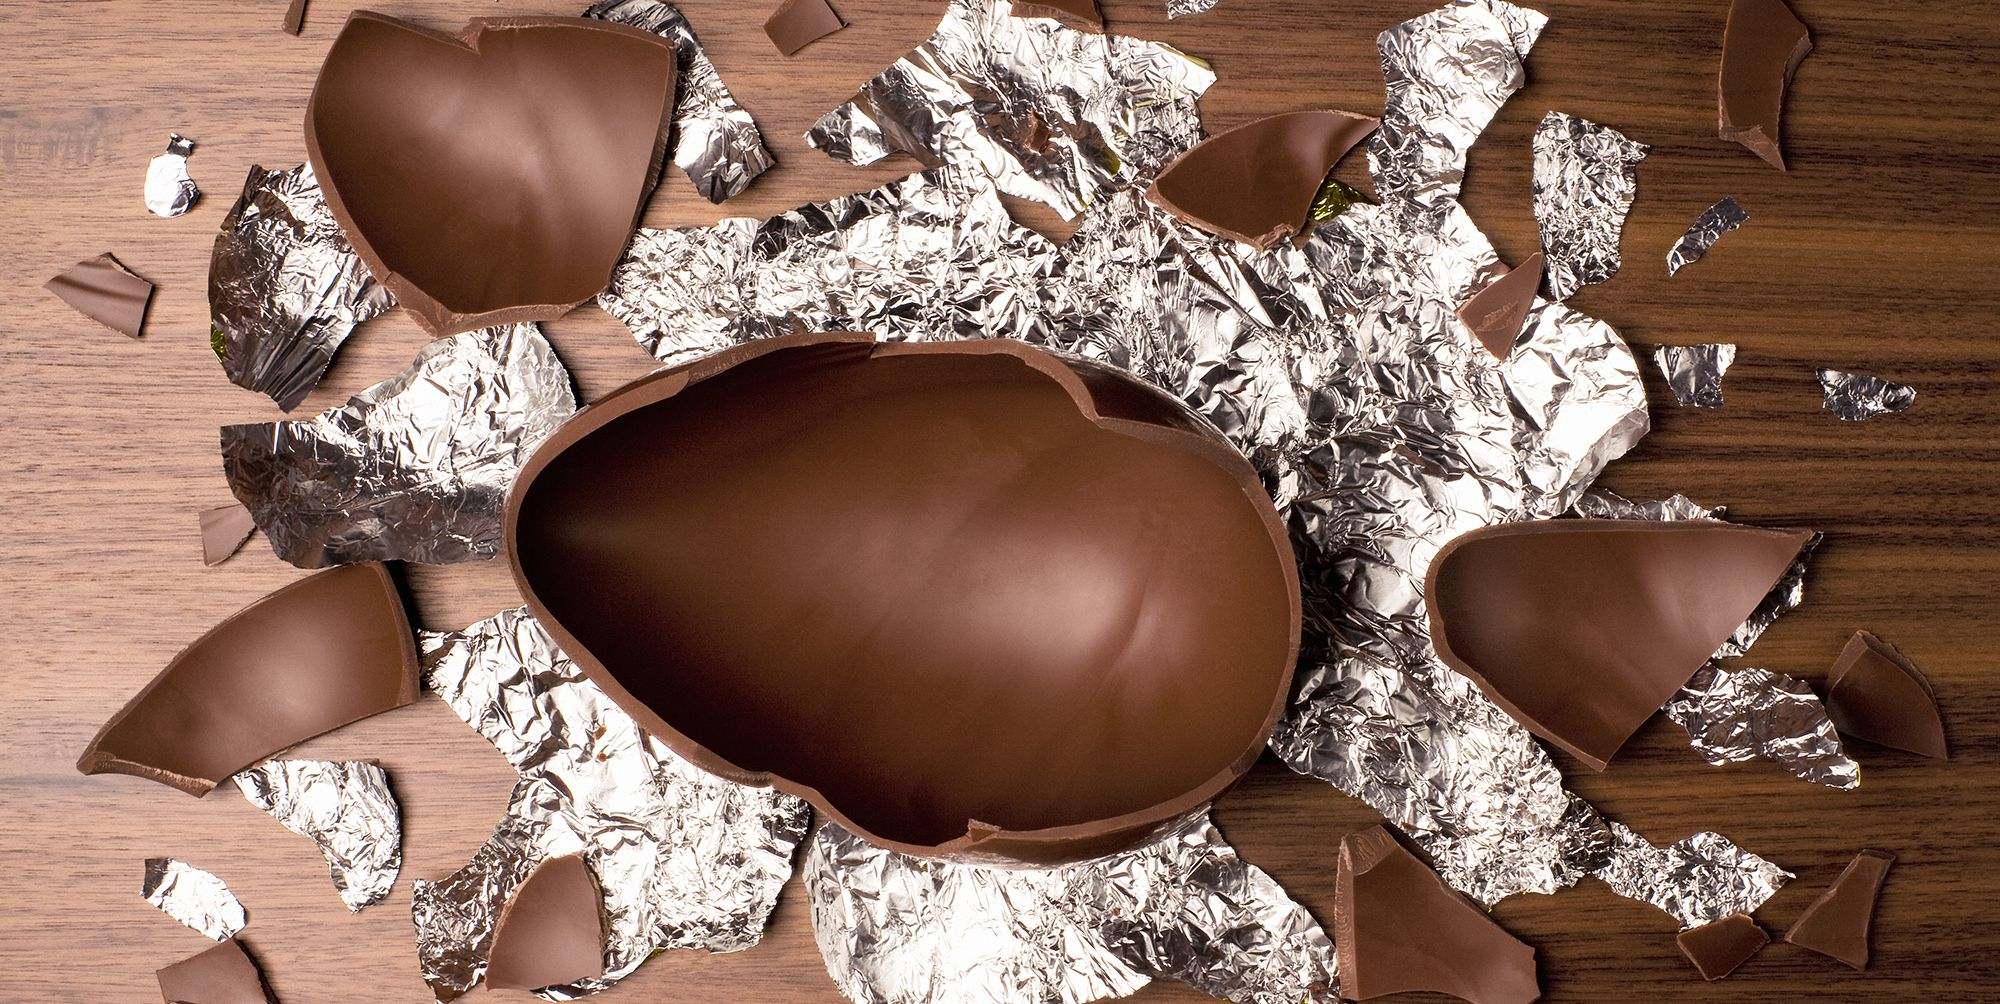 Cadbury Crunchie easter egg